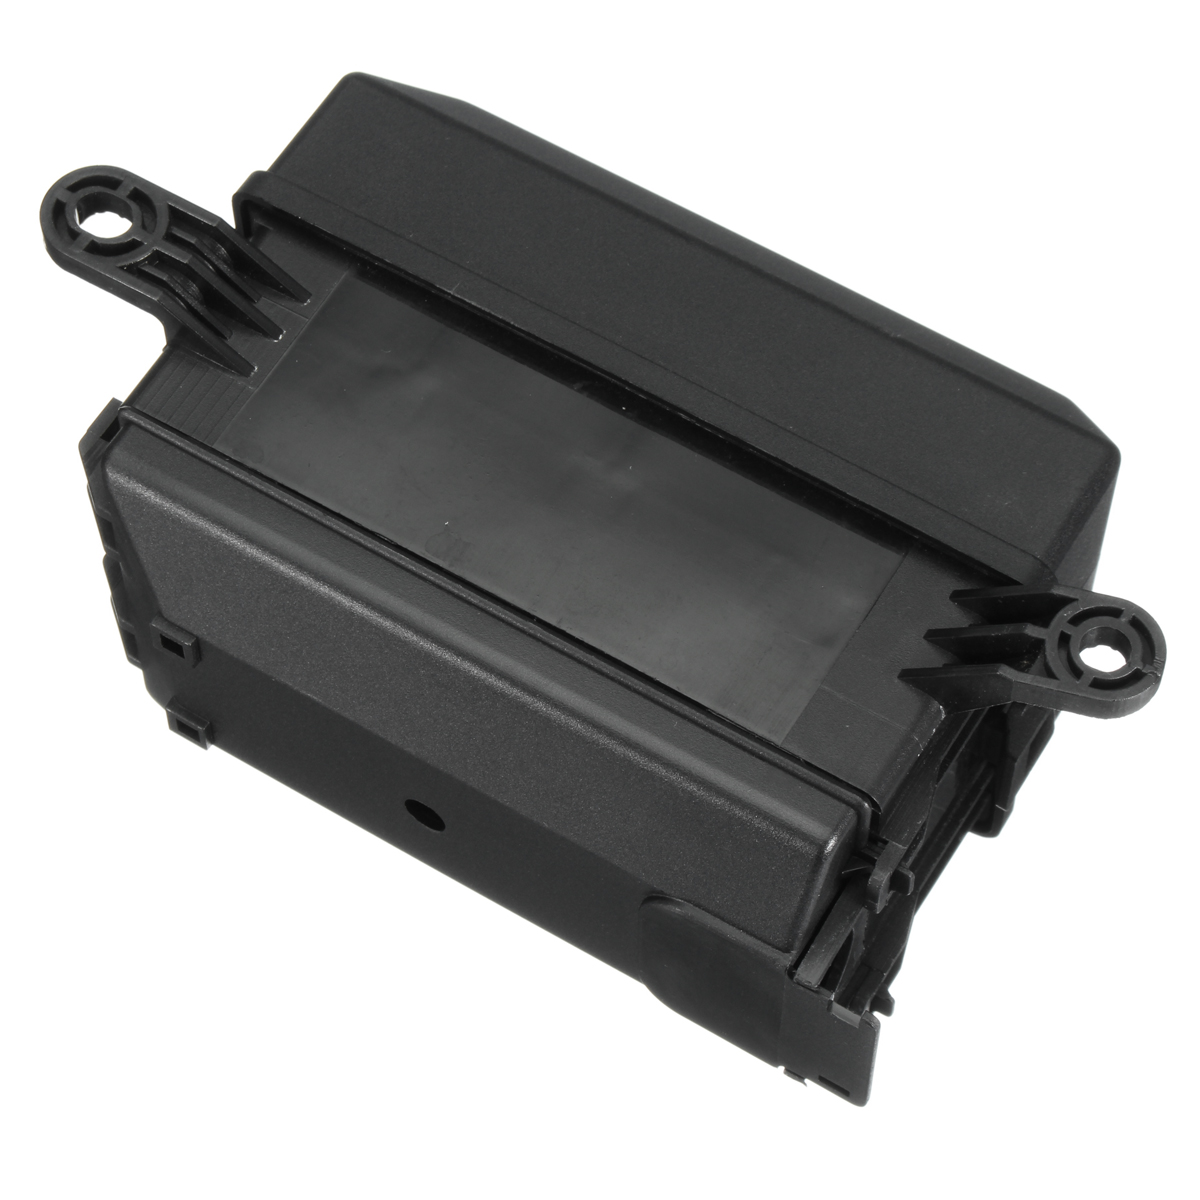 Universal Auto Fuse Box Vehicle Cover Car 6 Relay Soc End 5 19 2019 12 41 Pm Rh Lelong Com My Automotive Wiring Painless